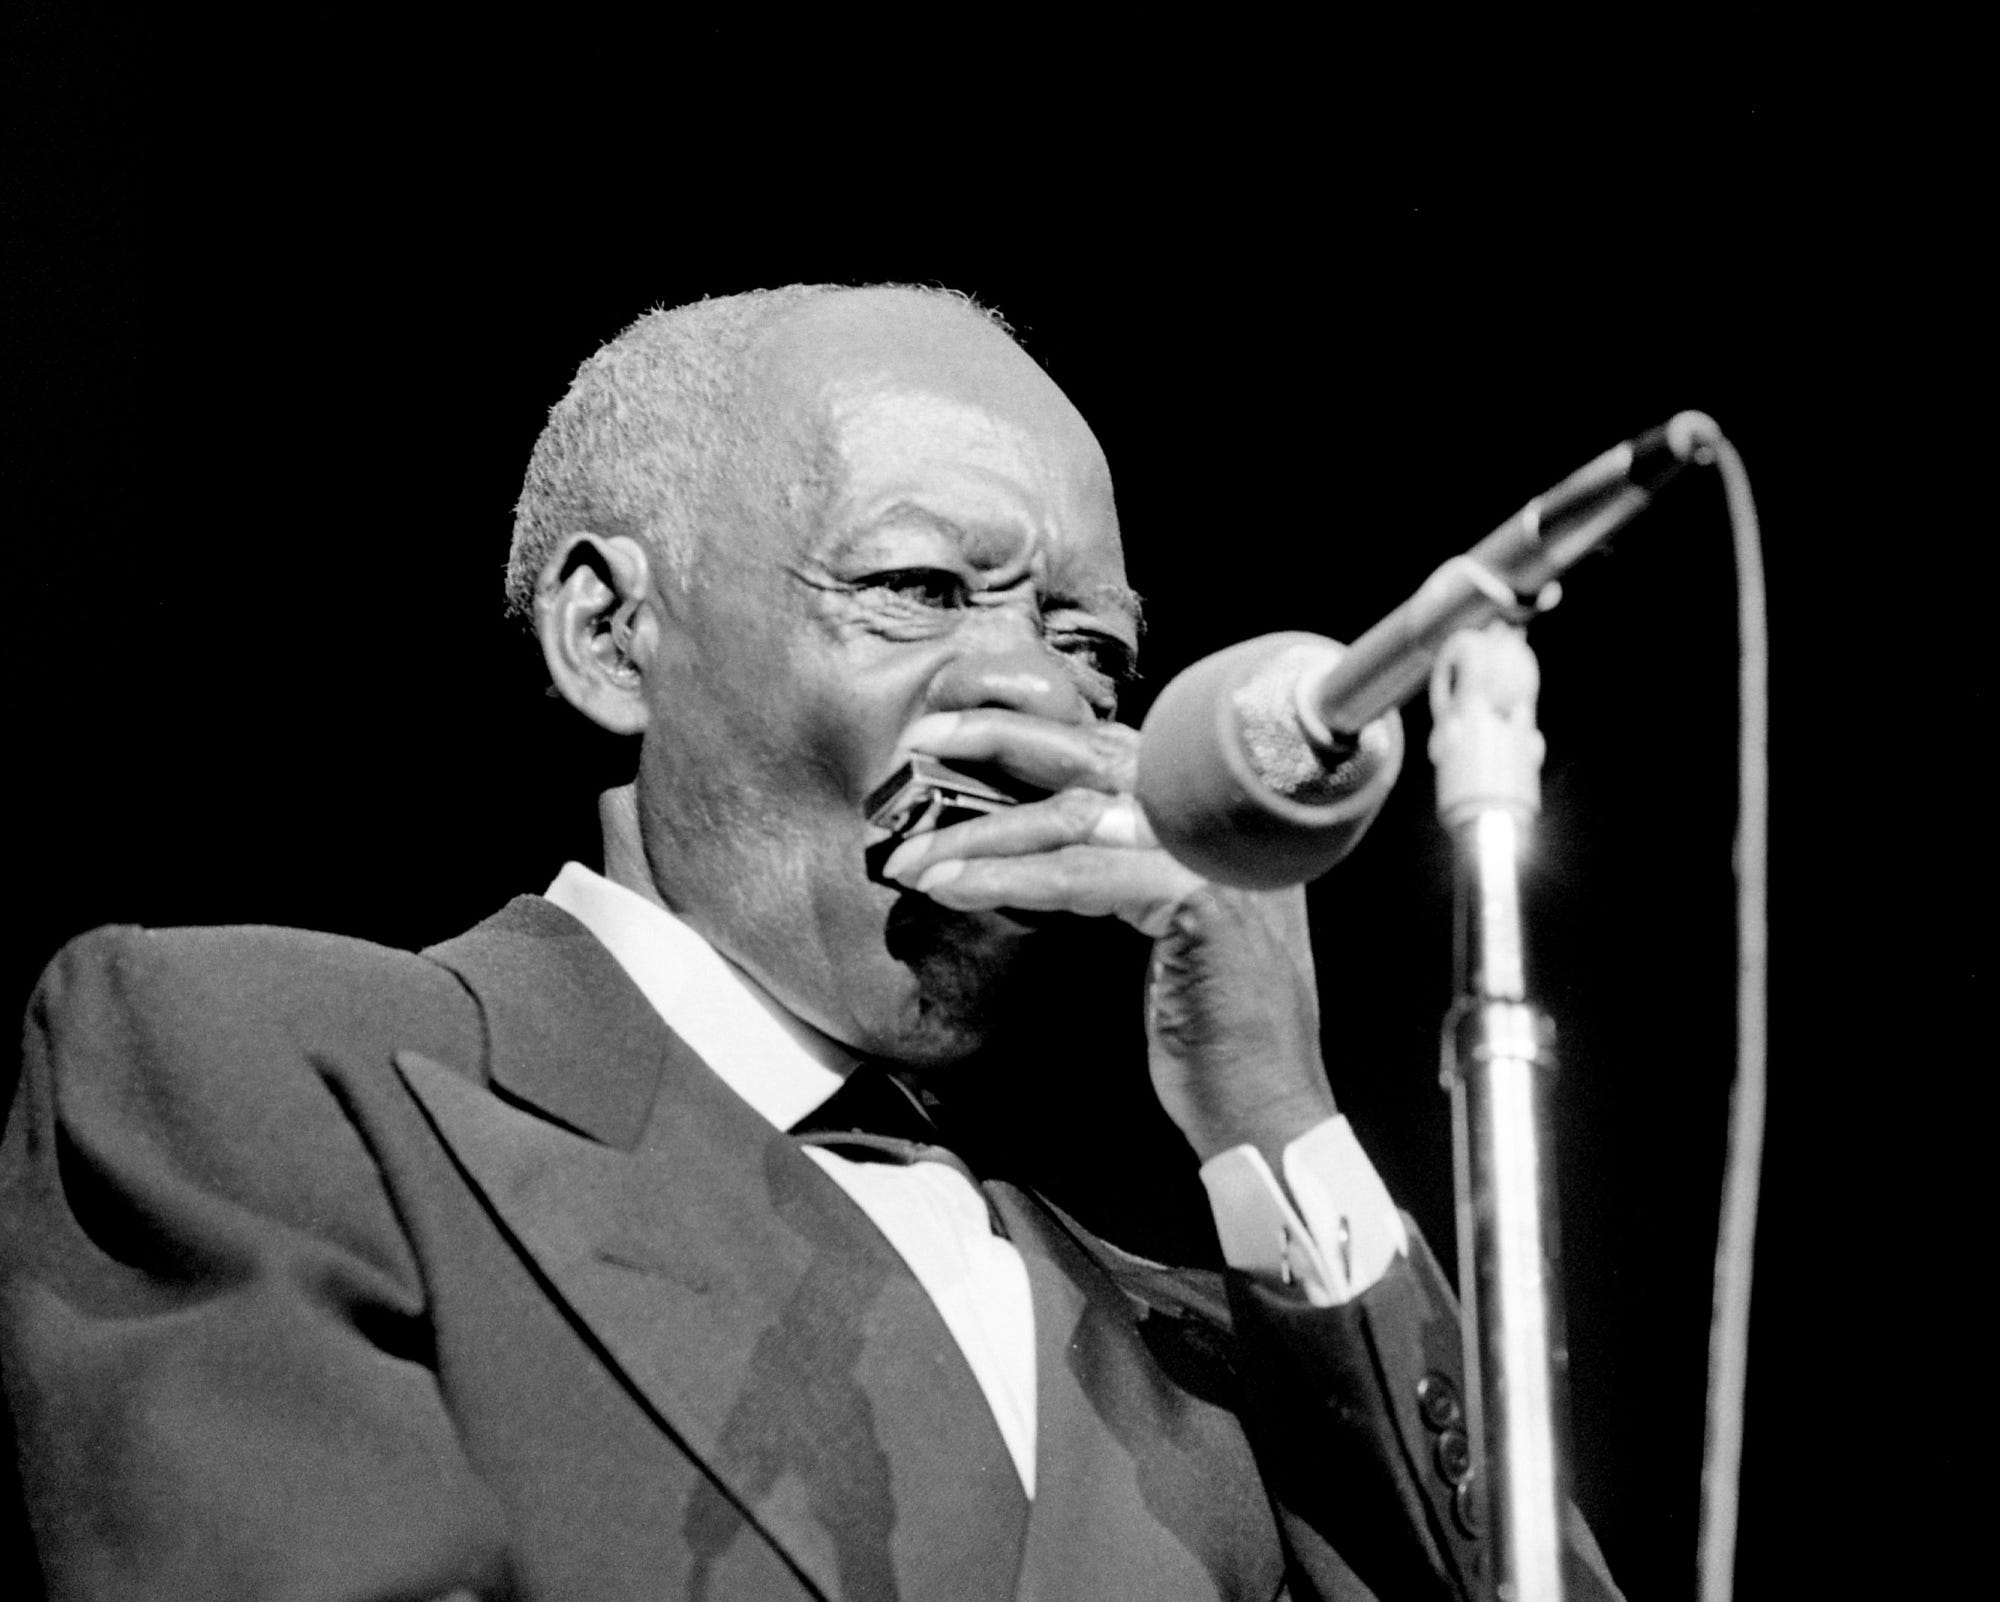 """Veteran harmonica player DeFord Bailey plays at the Grand Ole Opry House Dec. 14, 1974 with """"It Ain't Gonna Rain No More,"""" """"The Pan American Blues"""" and """"Fox Chase."""""""